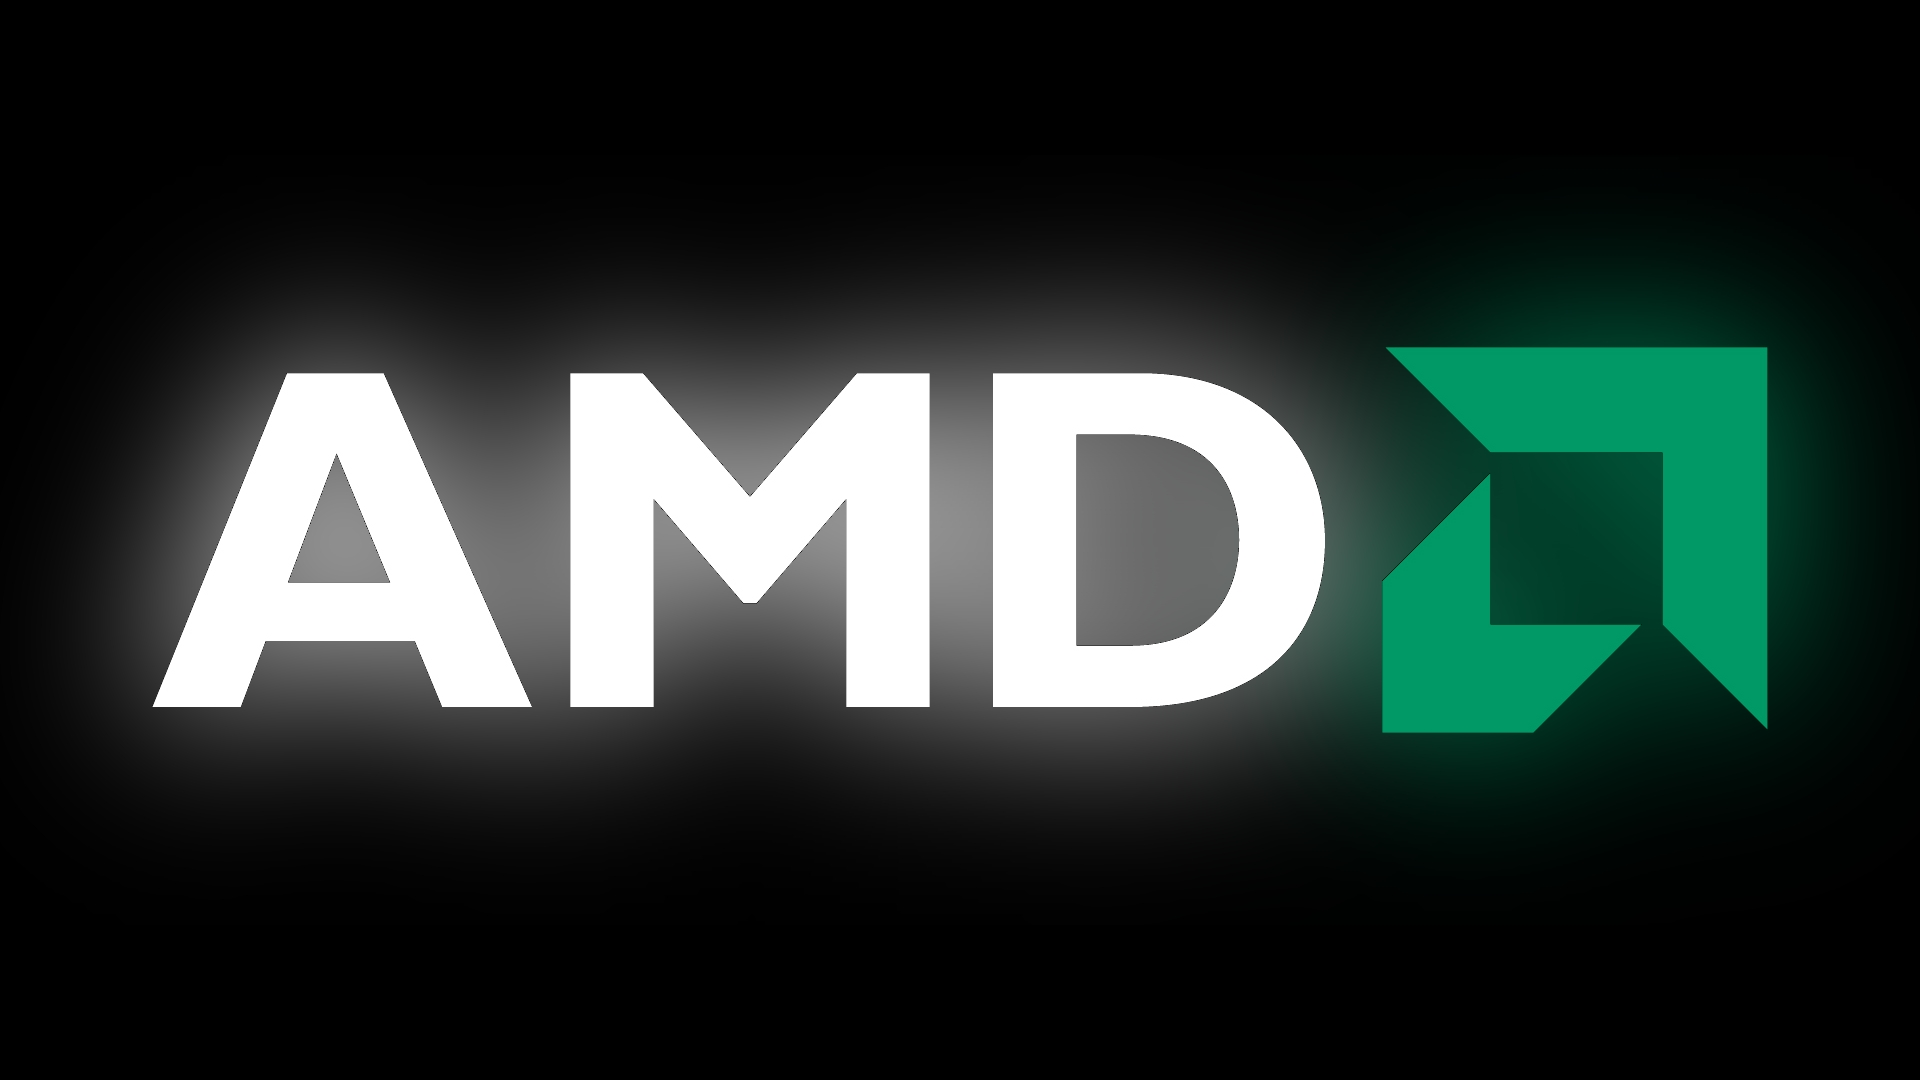 download wallpapers amd fx - photo #30